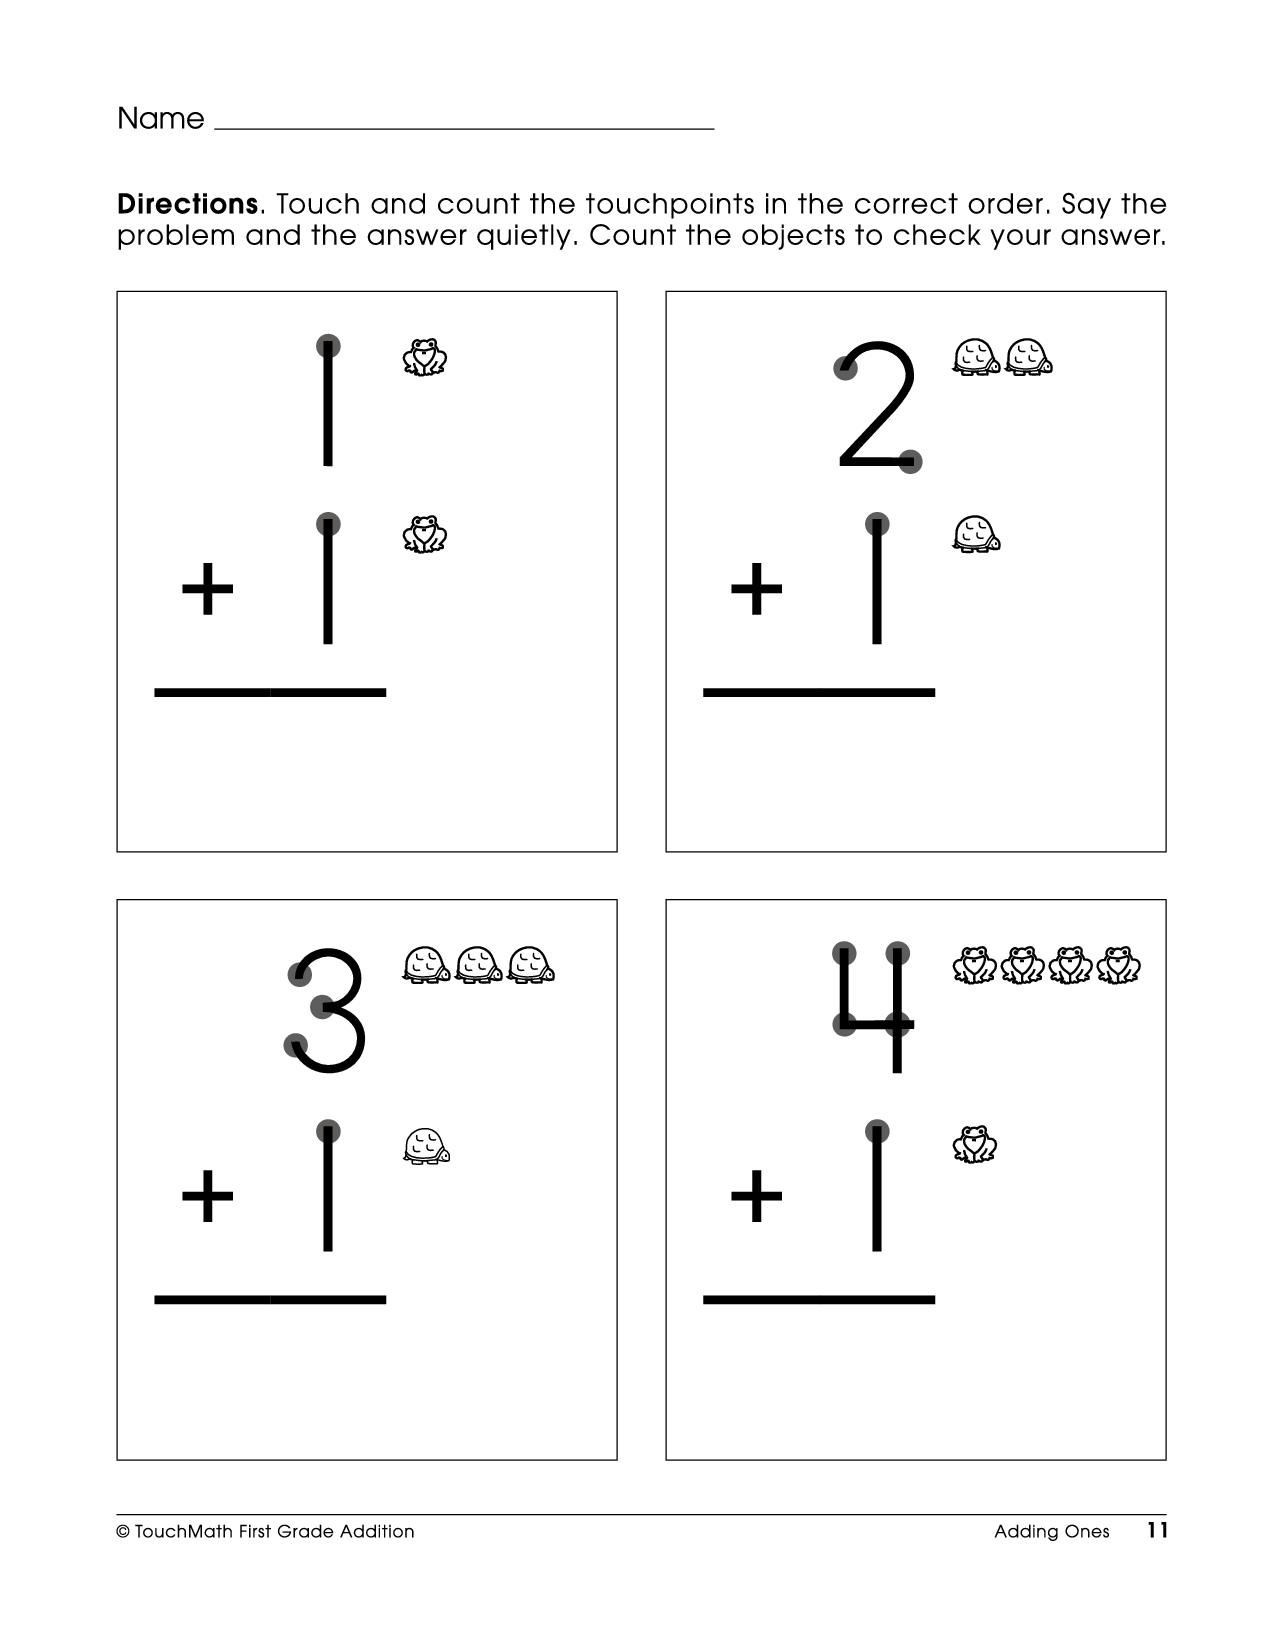 Touch Points Math Worksheets Free Printable touchpoint Math Worksheets In 2020